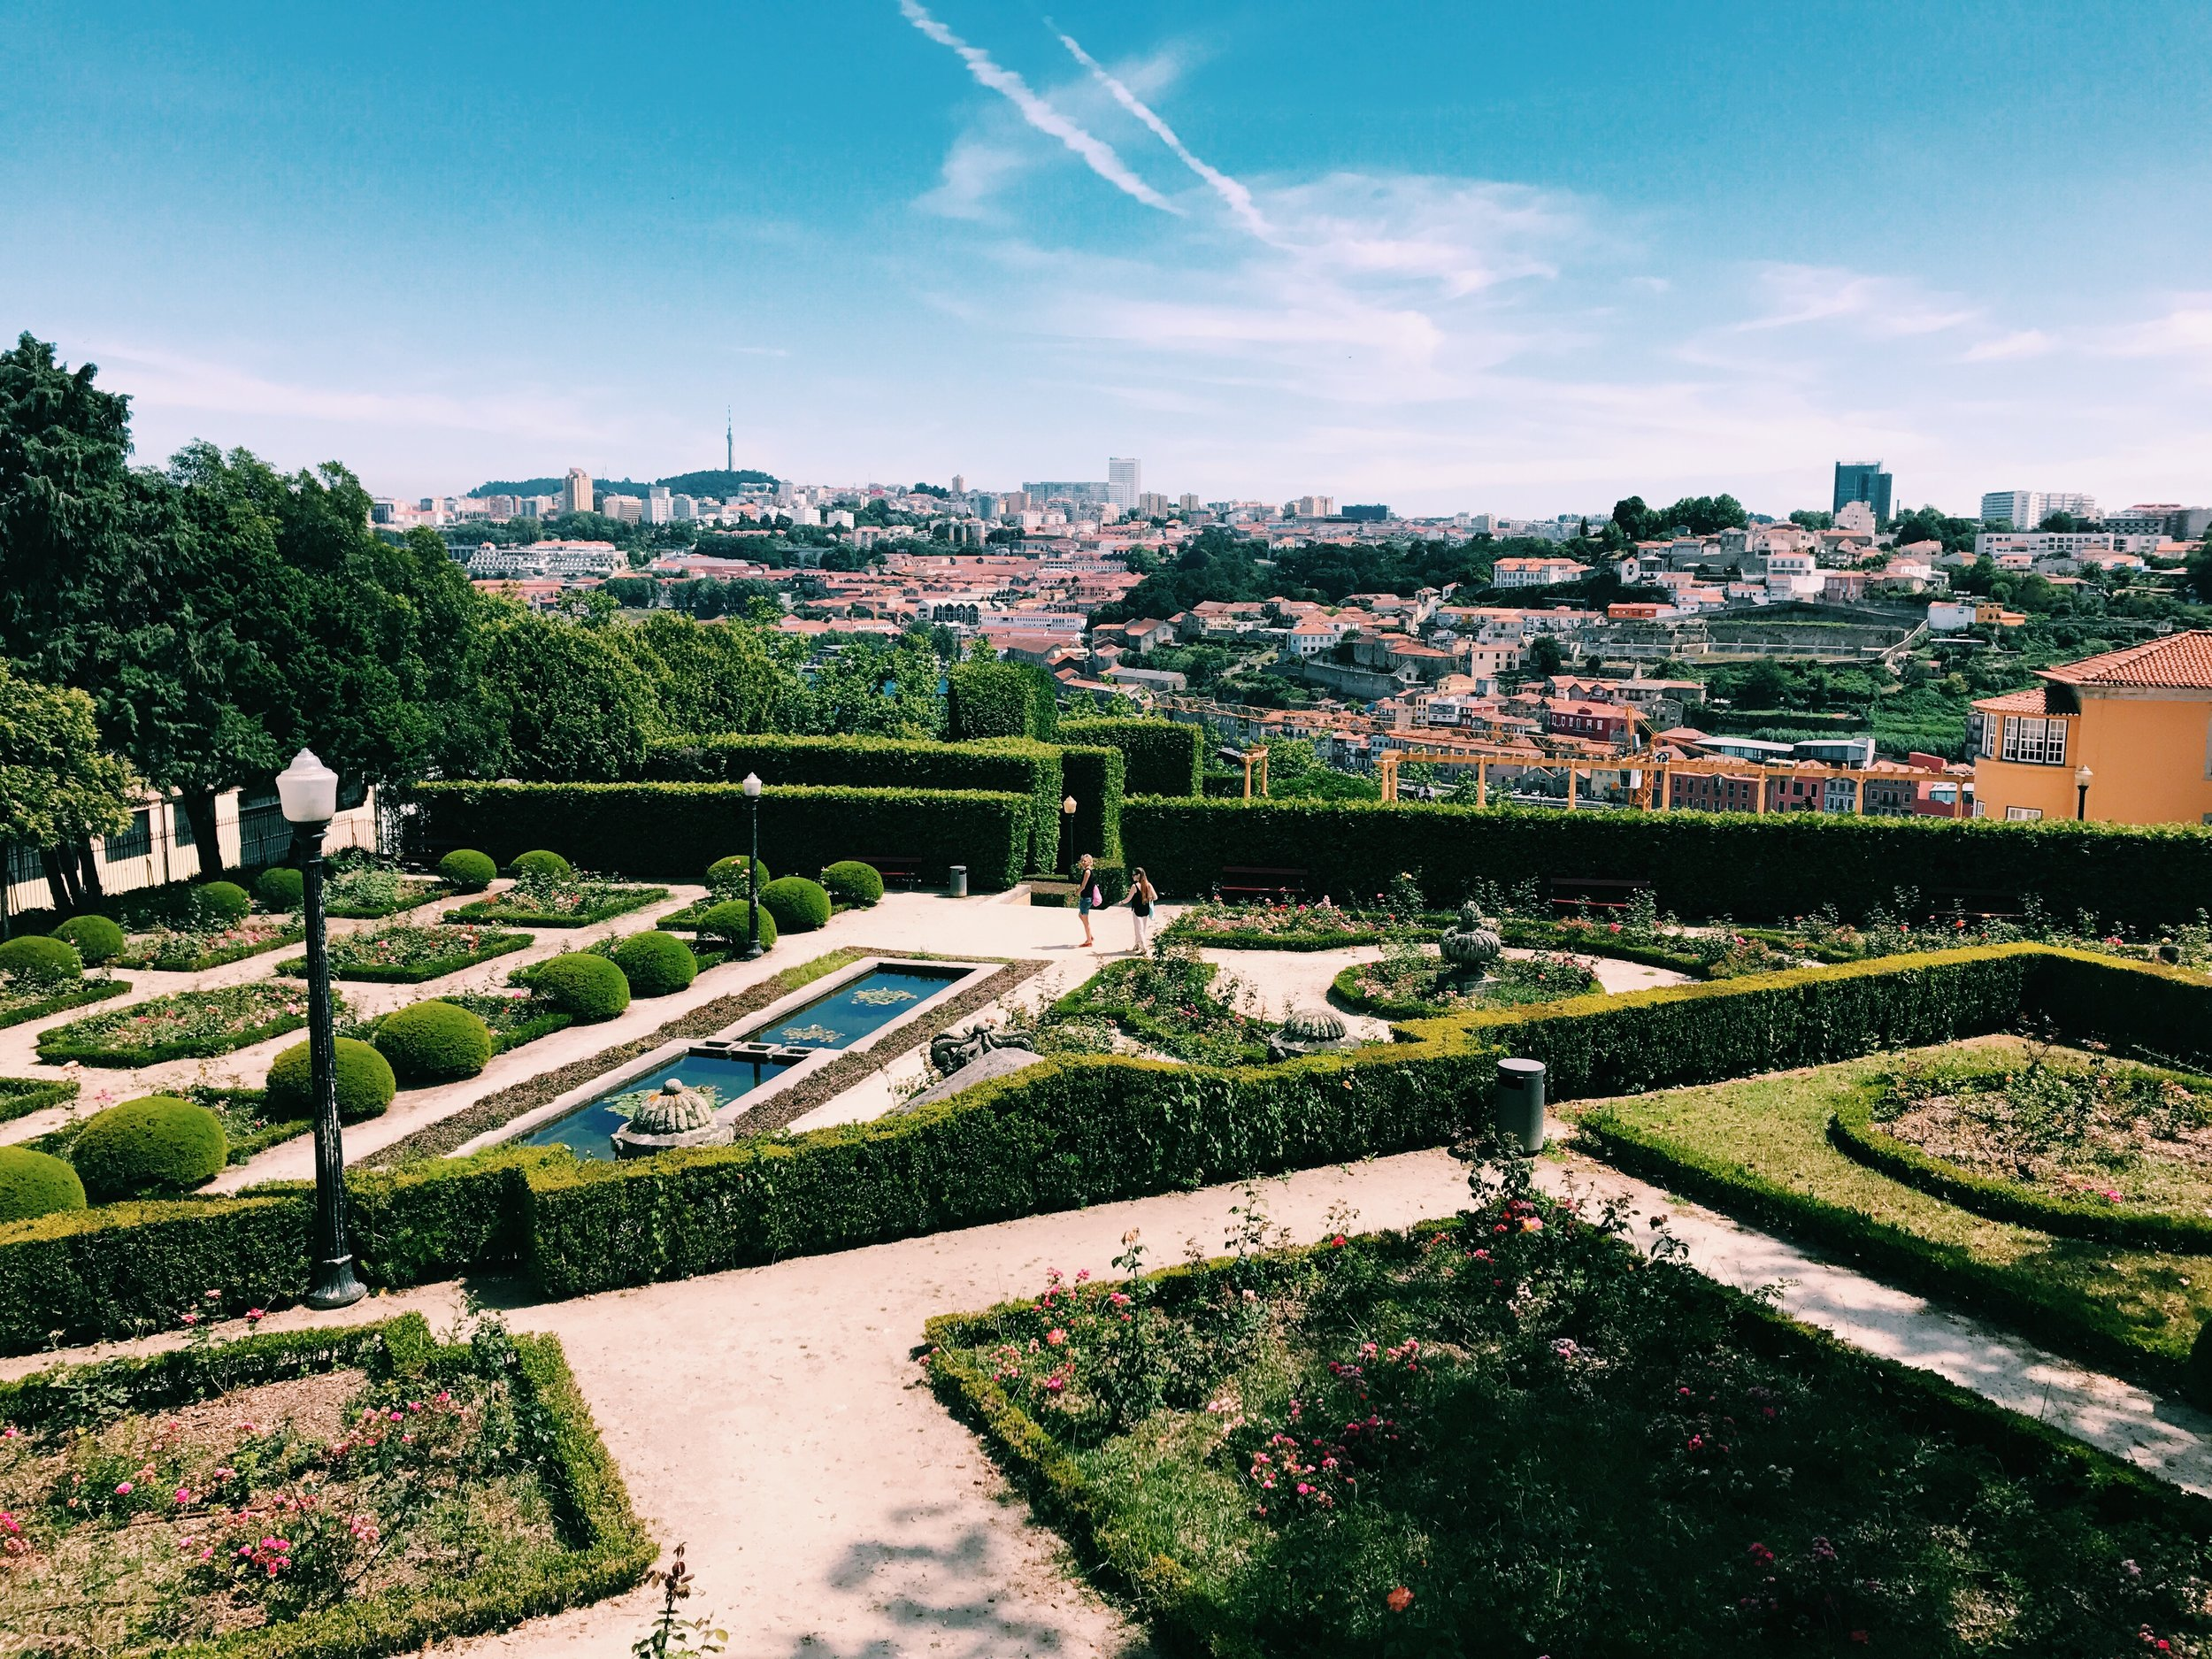 Rose Garden in the Garden of the Crystal Palace in Porto